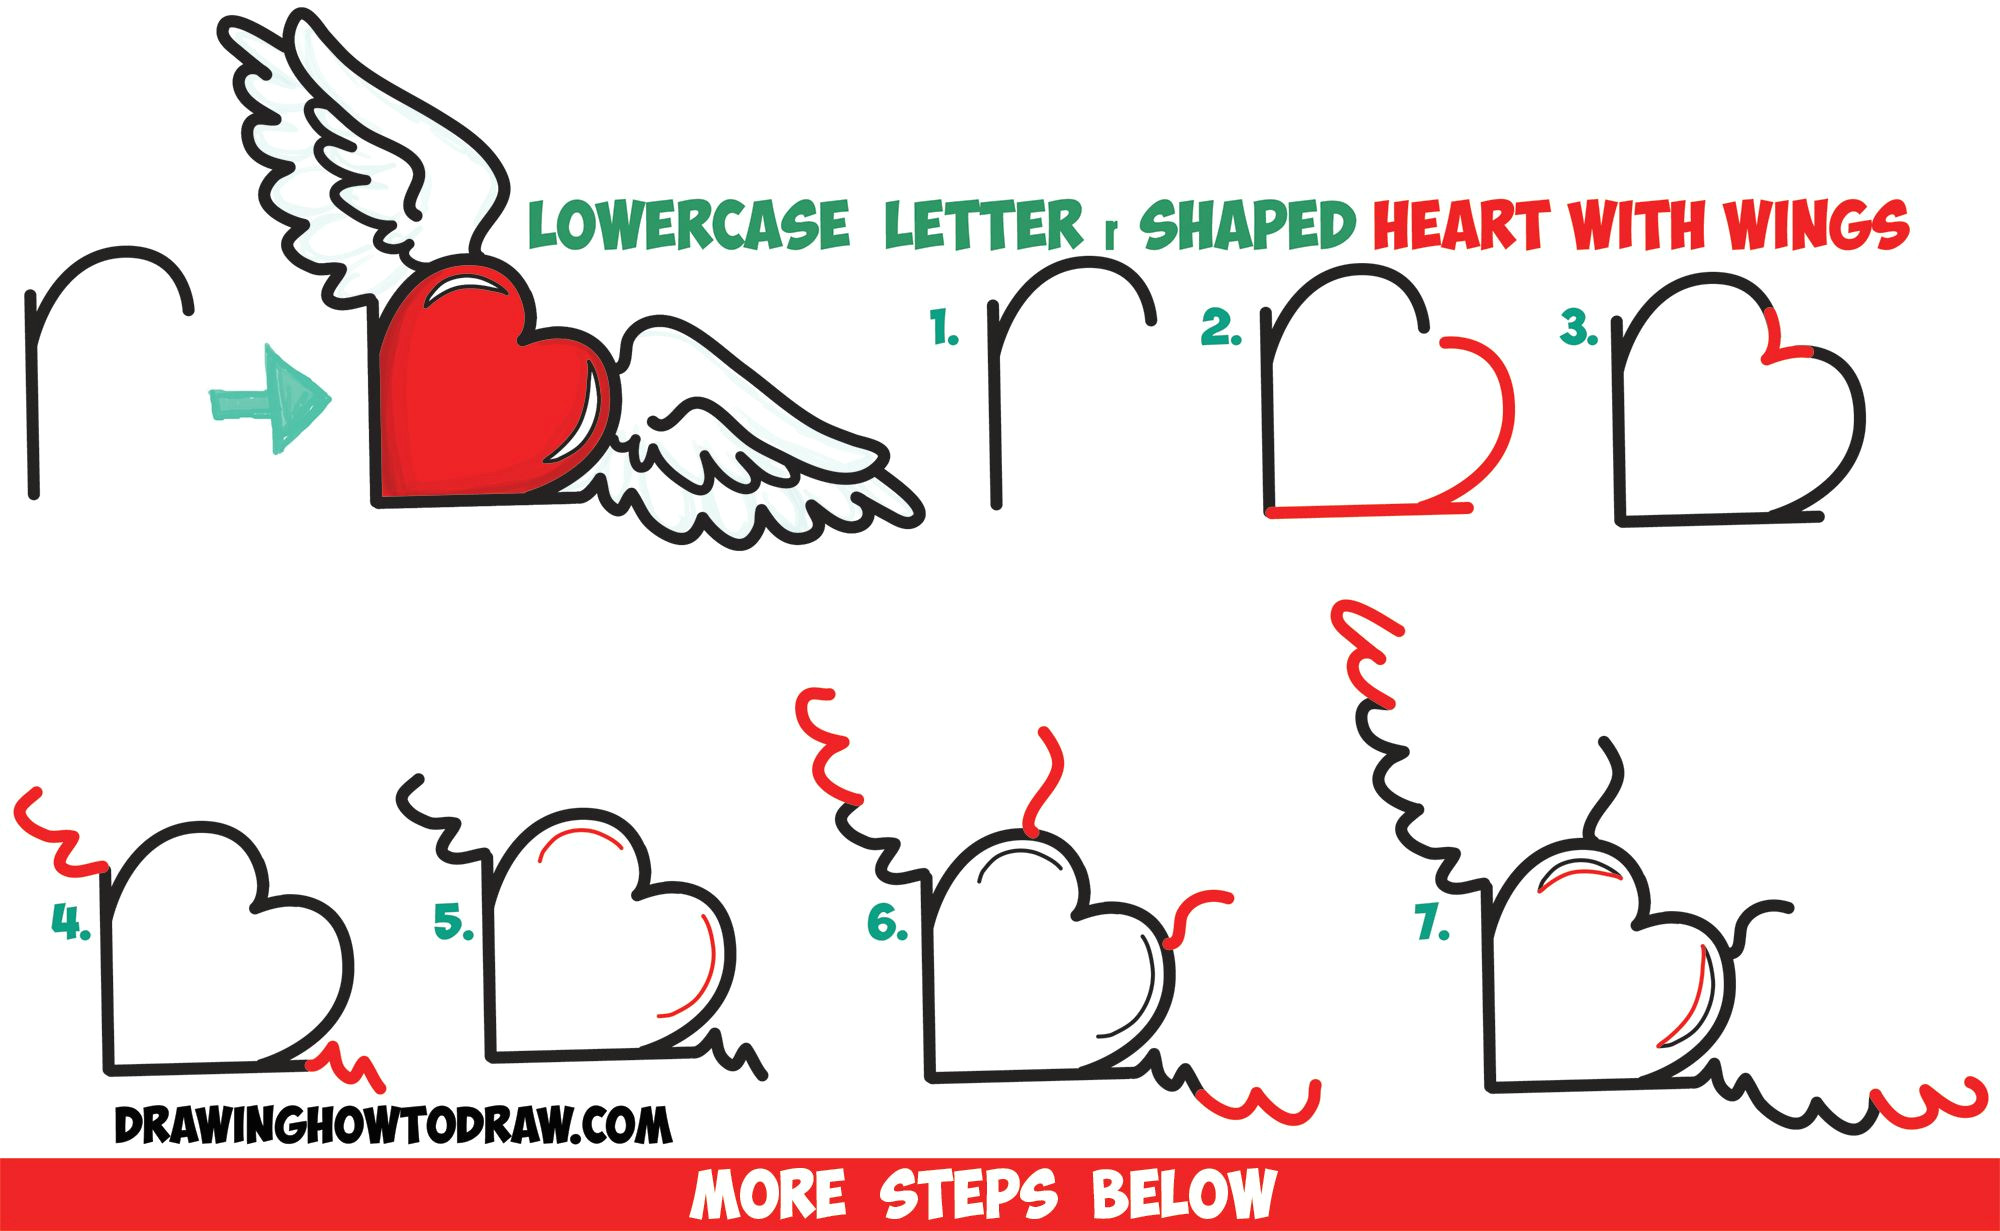 how to draw heart with wings from lowercase letter r shapes easy step by step